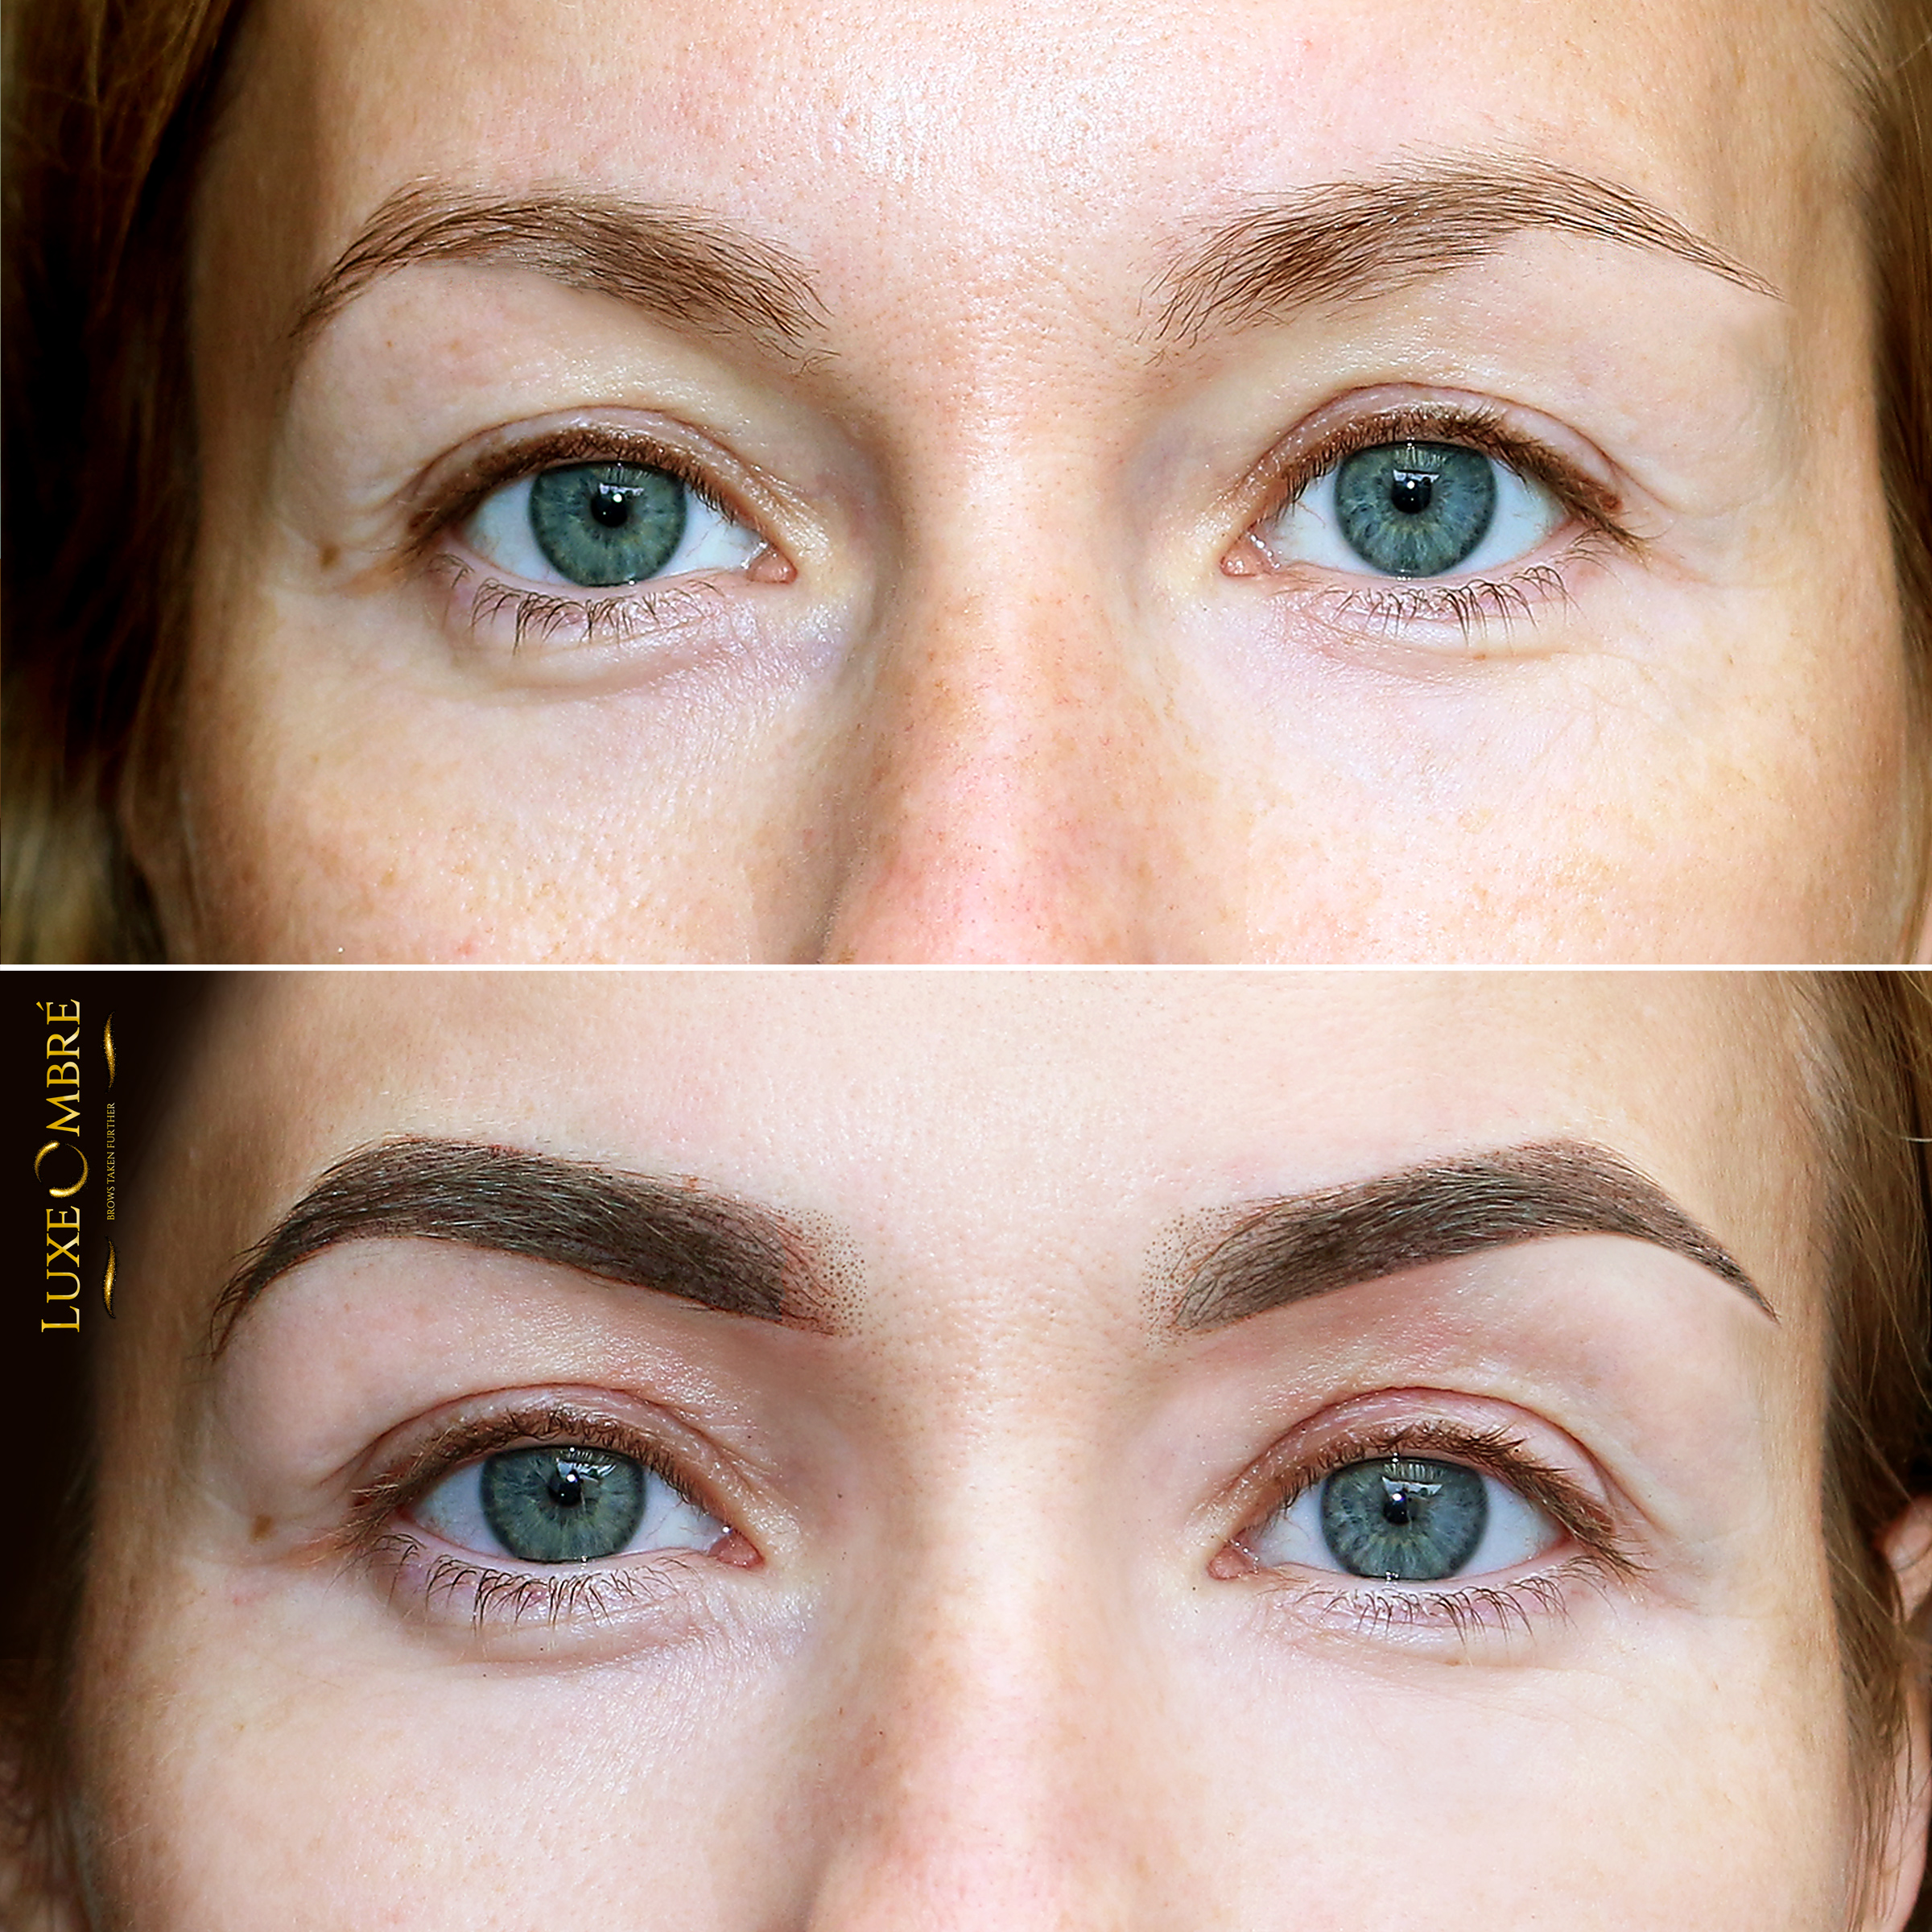 A transformation from ordinary brows to excellence with LuxeOmbre pigmentation.